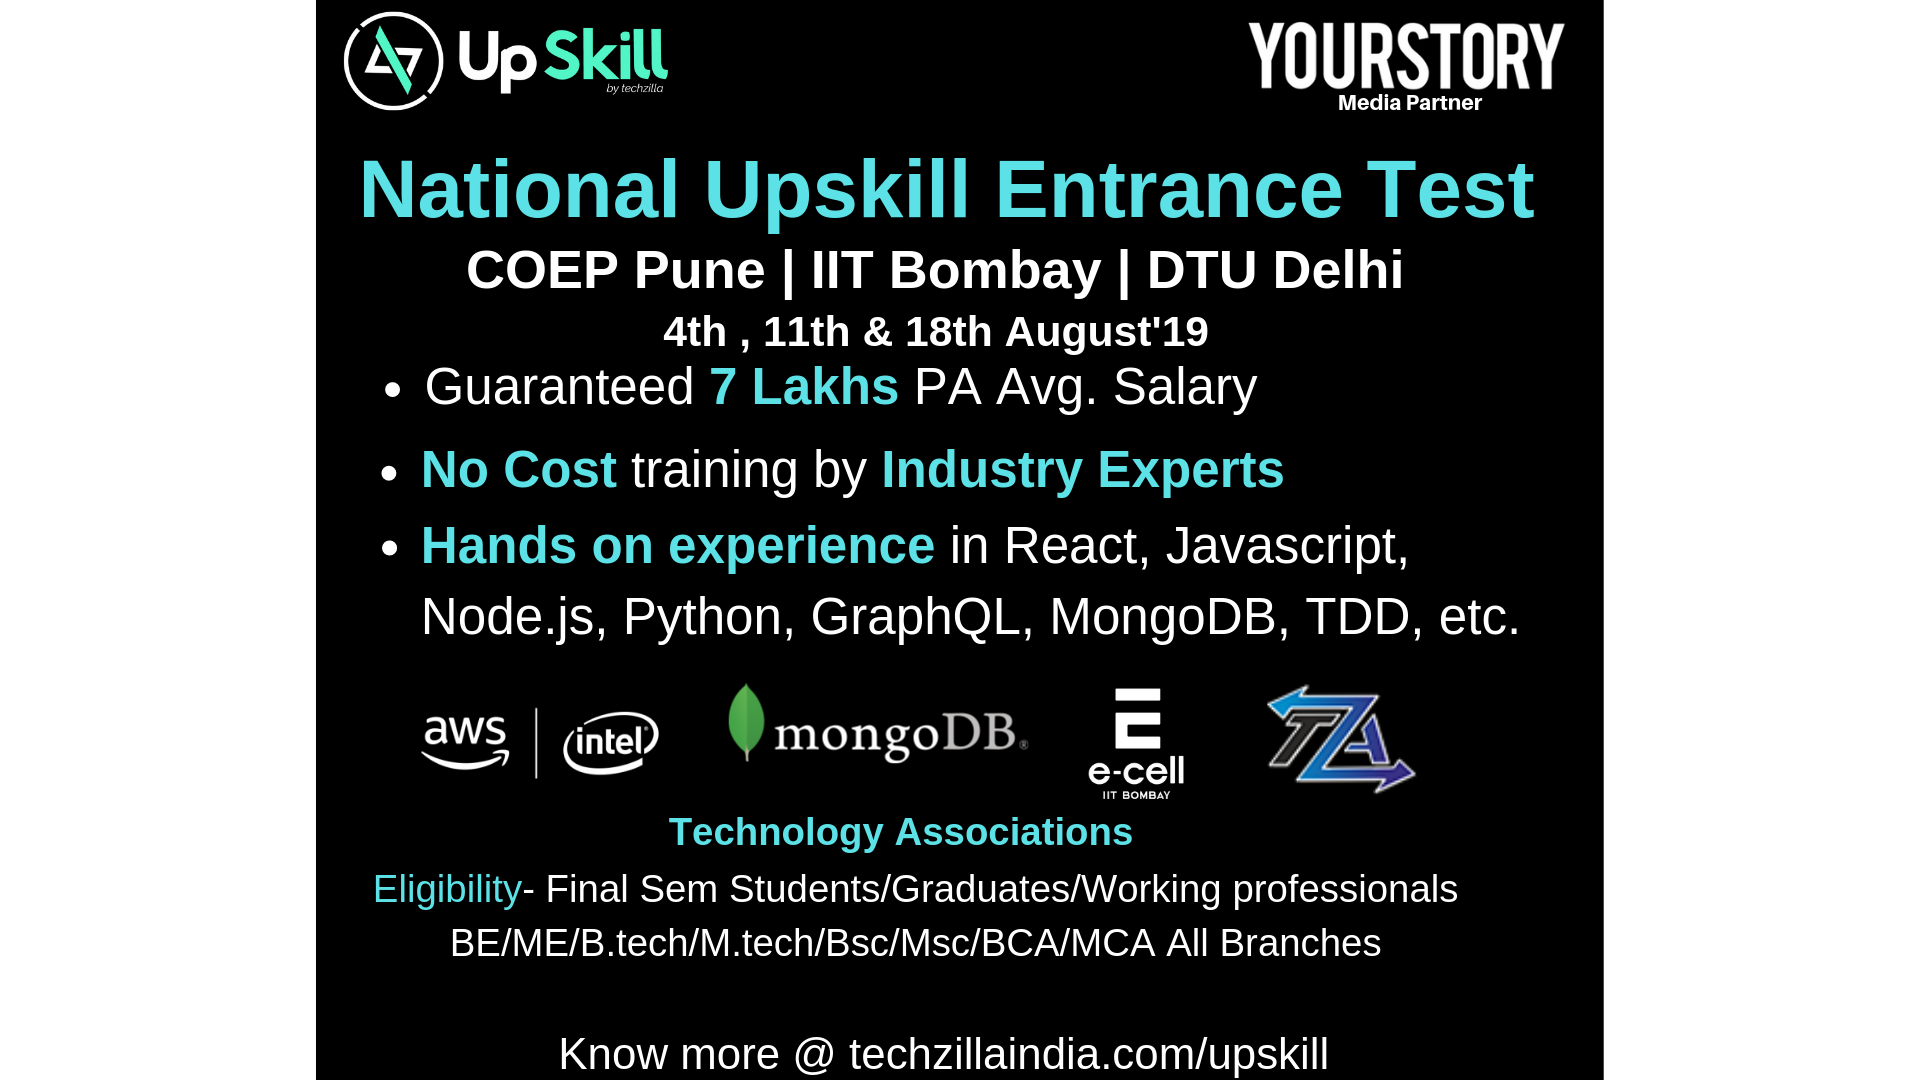 National Upskill Entrance Test | YourStory Events